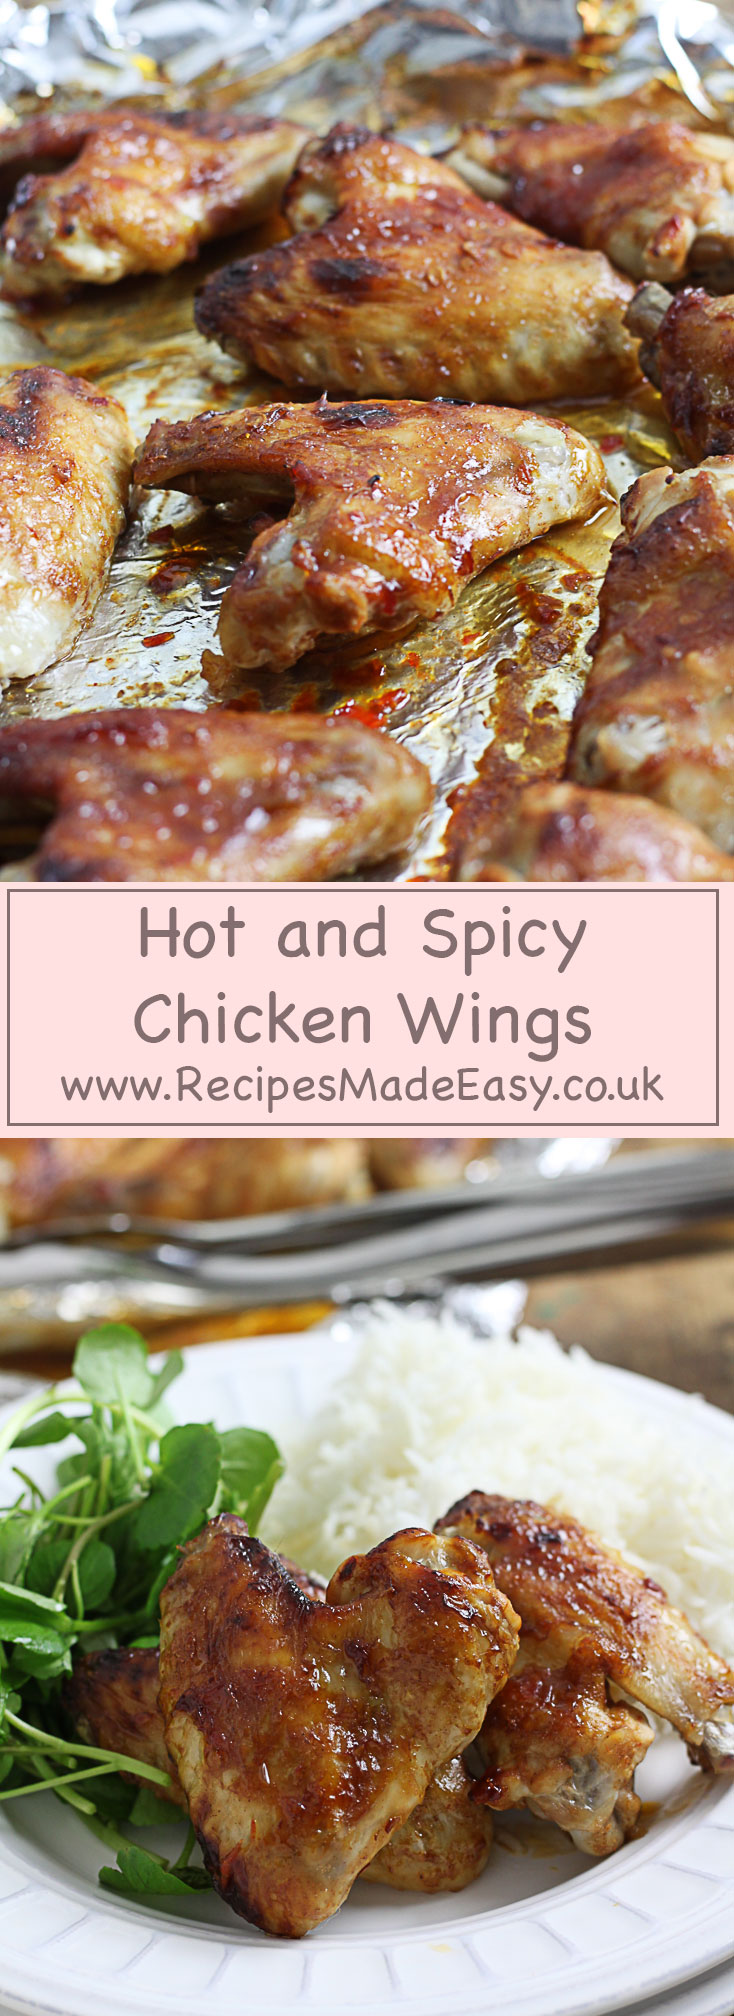 hot and spicy chicken wings baked in a simple spicy glaze. www.recipesmadeeasy.co.uk